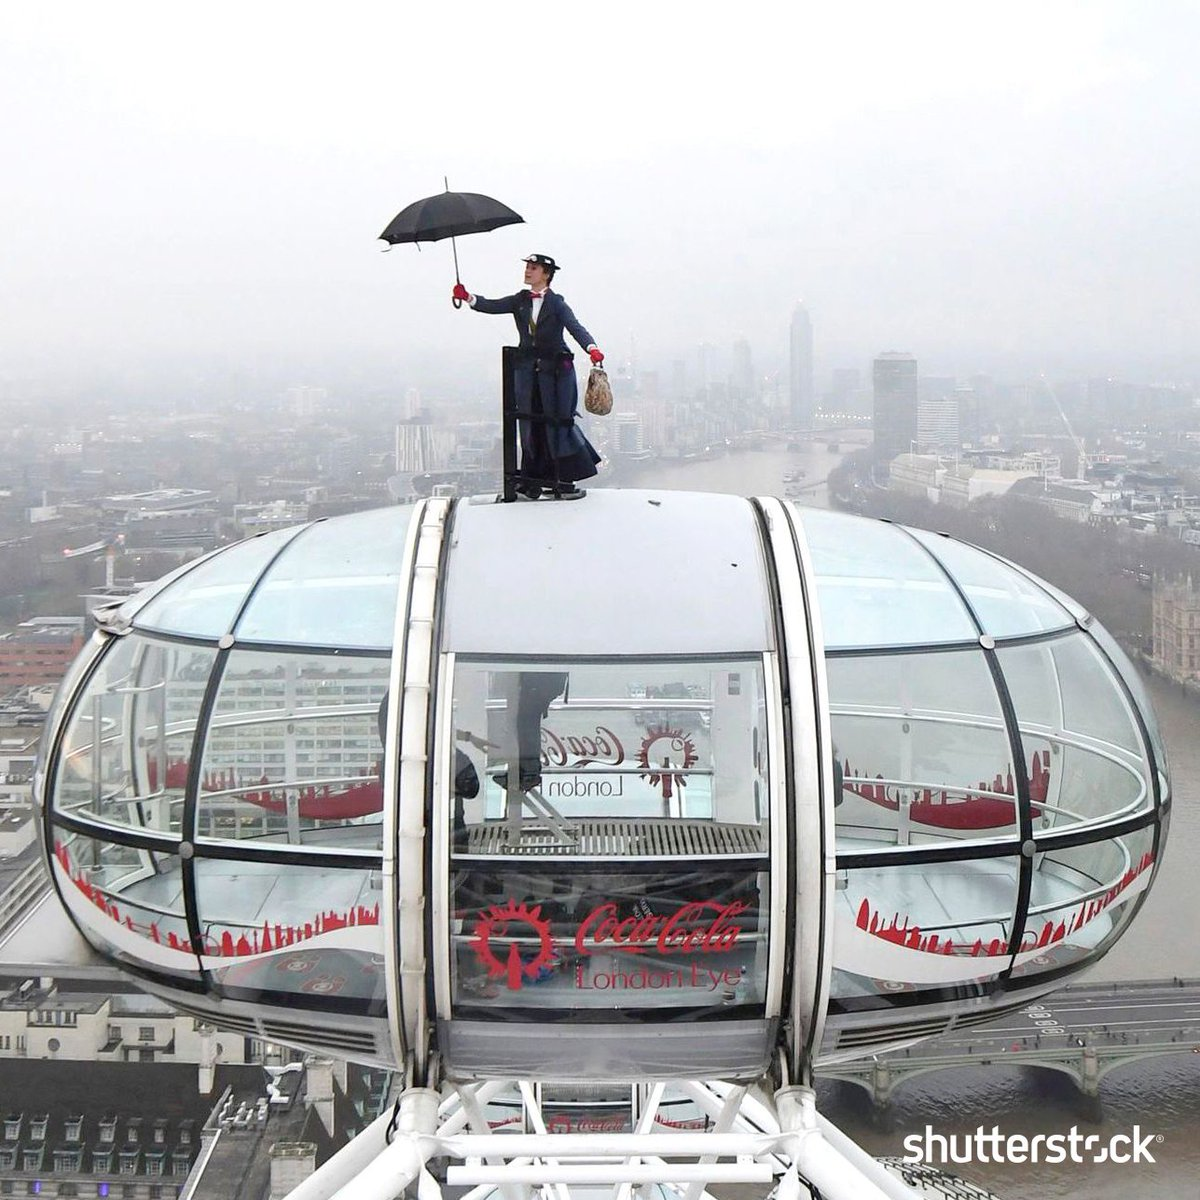 Ahead of the European movie premiere of #MaryPoppinsReturns, a #MaryPoppins stunt double rides atop of the London Eye in central London + more photos of the day shutr.bz/EditorsPicks | 📸 AP/Shutterstock